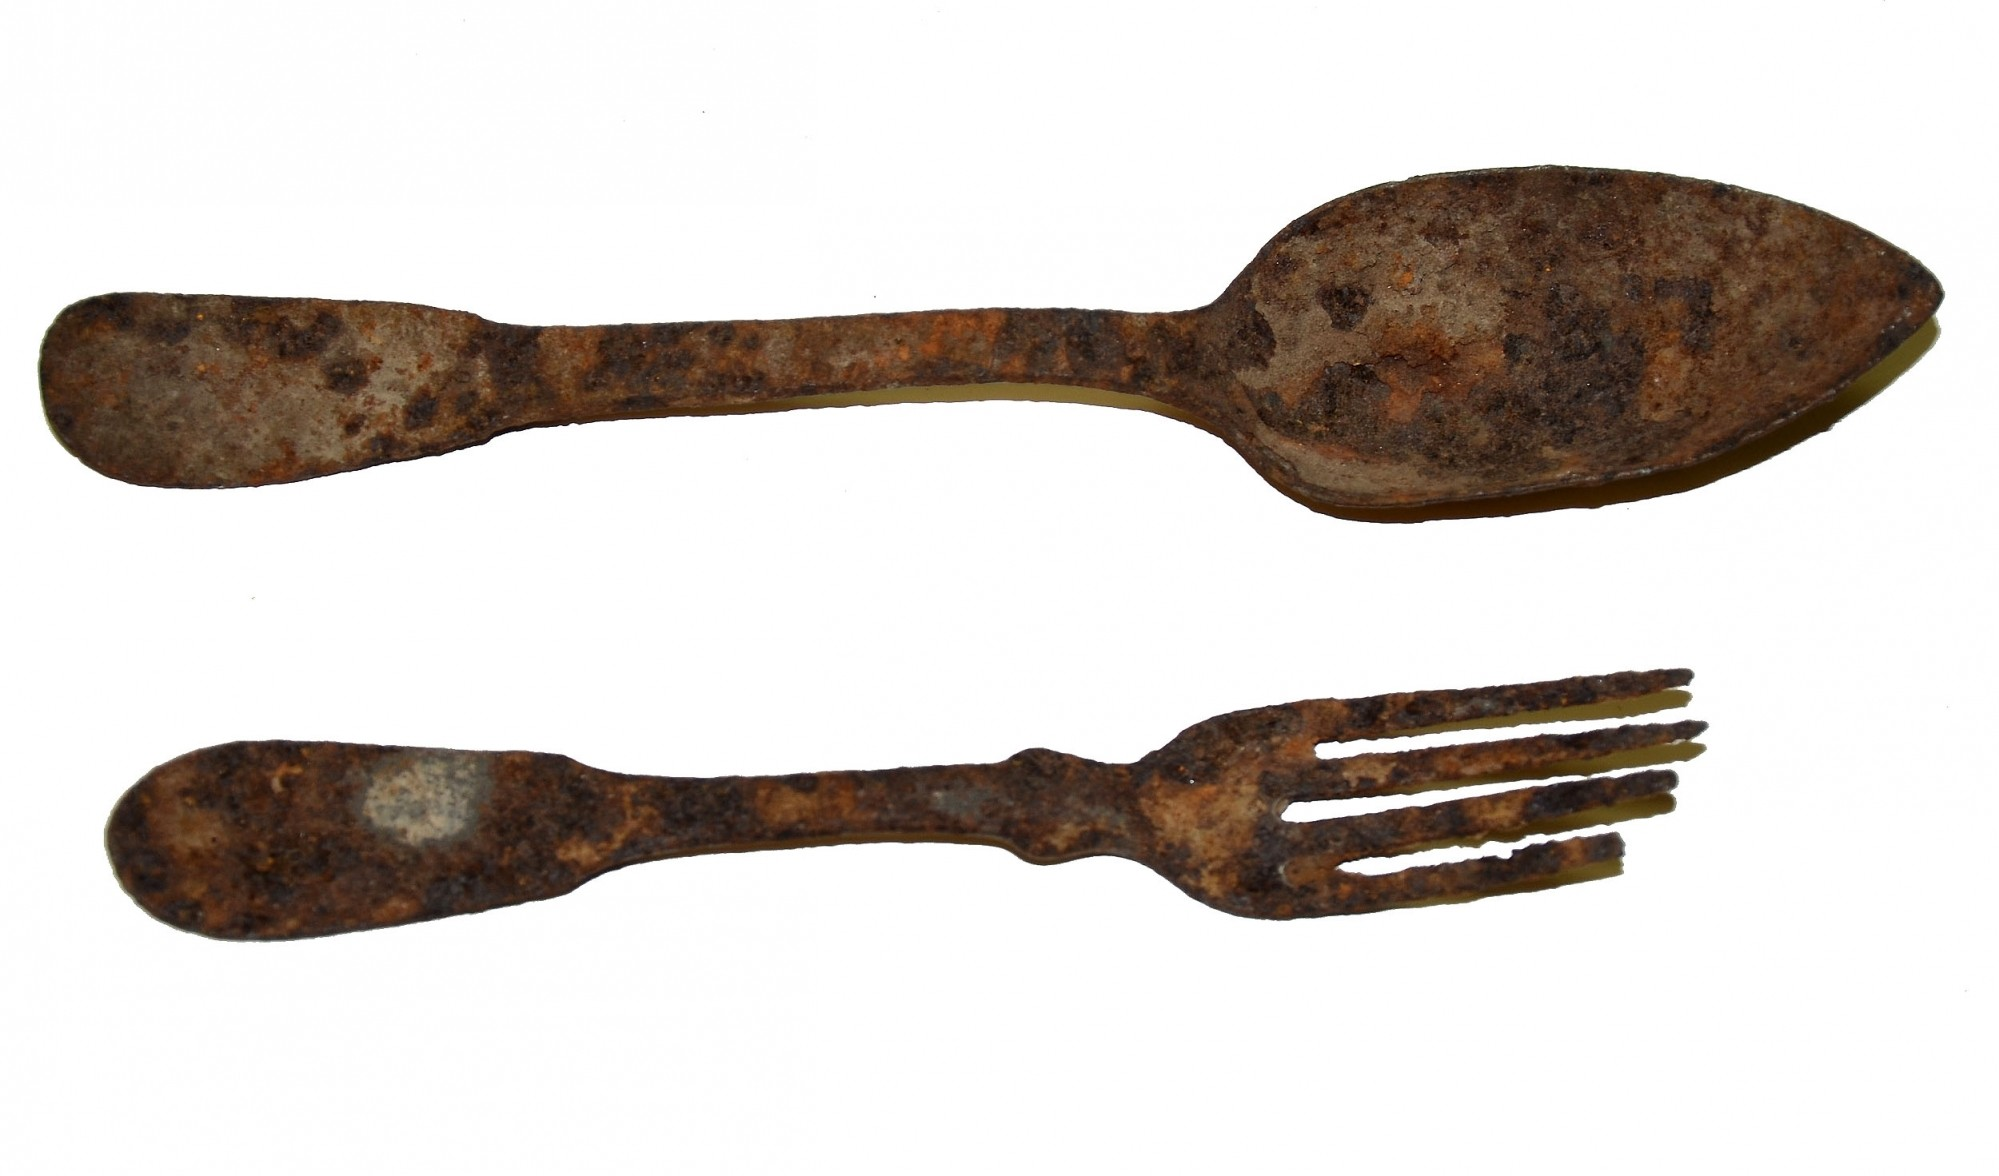 RELIC SPOON & FORK FROM THE FAMOUS DANNER COLLECTION, GETTYSBURG